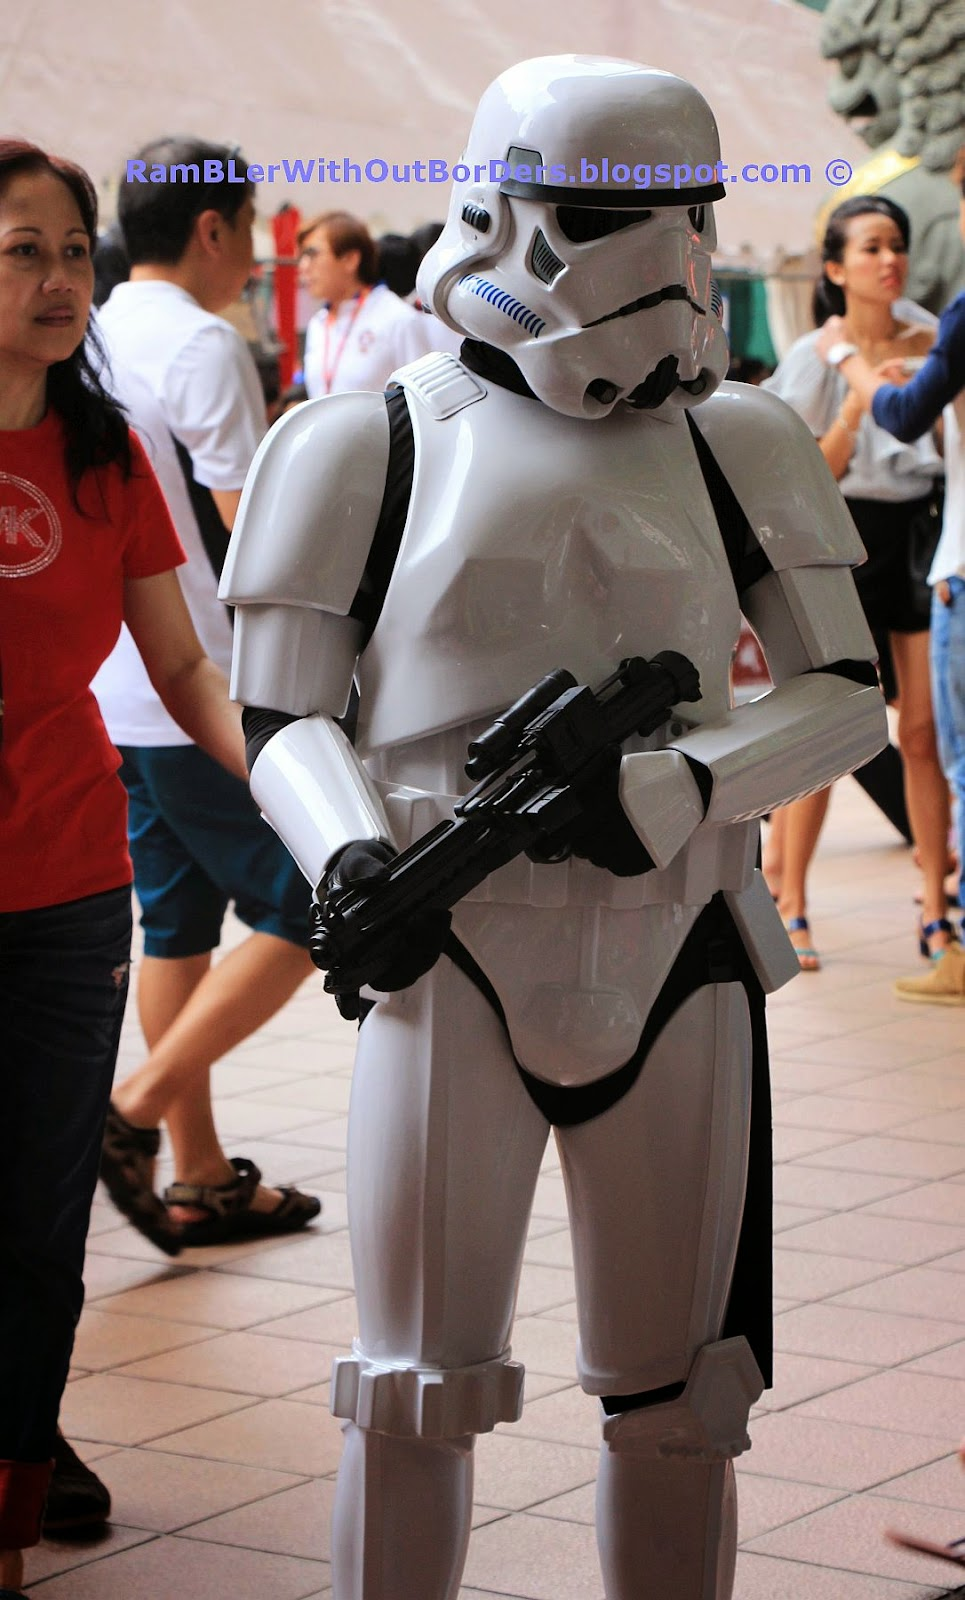 Star Wars Stormtrooper, Singapore International Red Cross Bazaar 2015